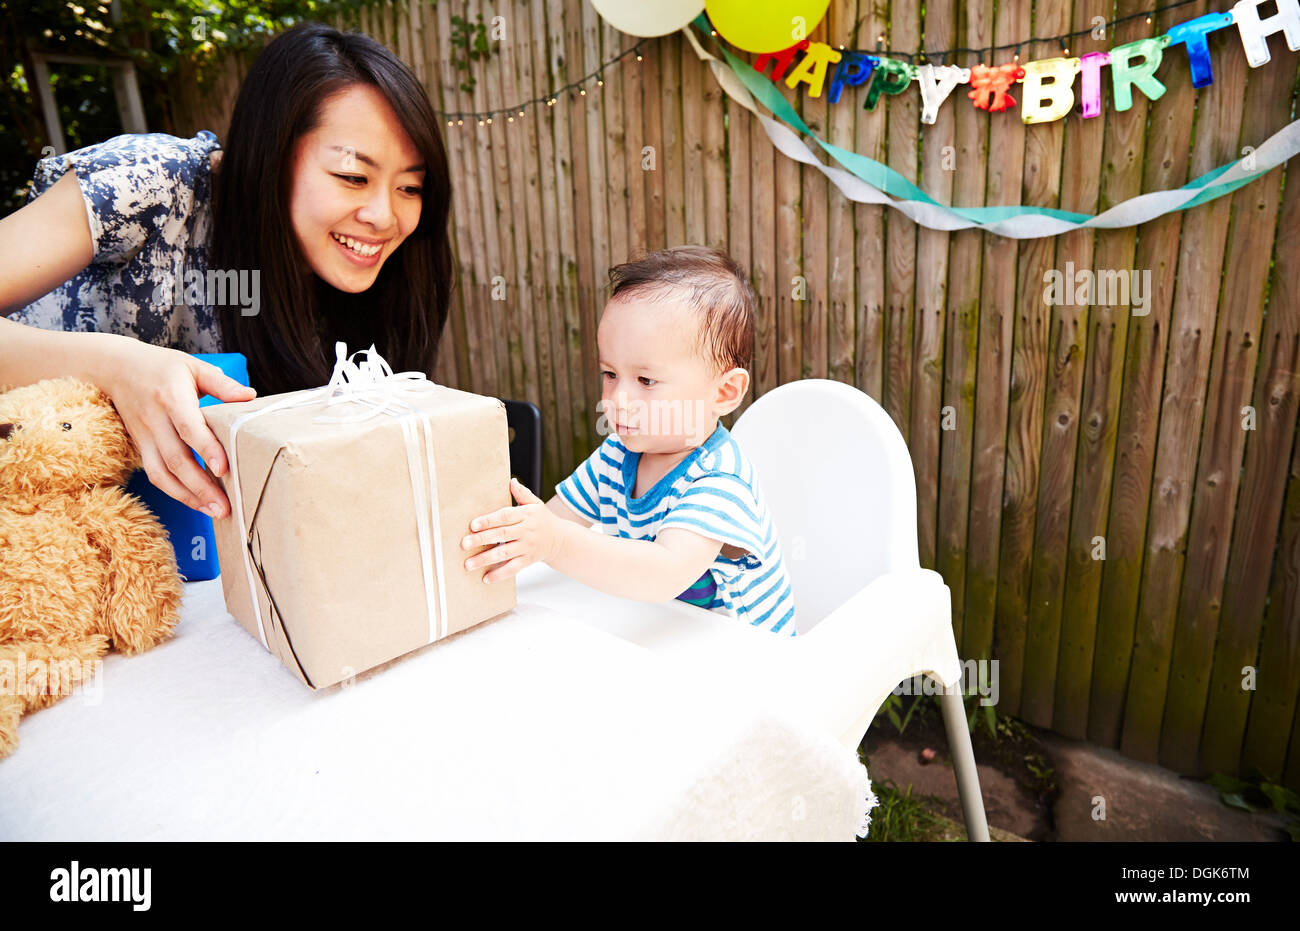 Mother handing birthday gift to baby boy - Stock Image